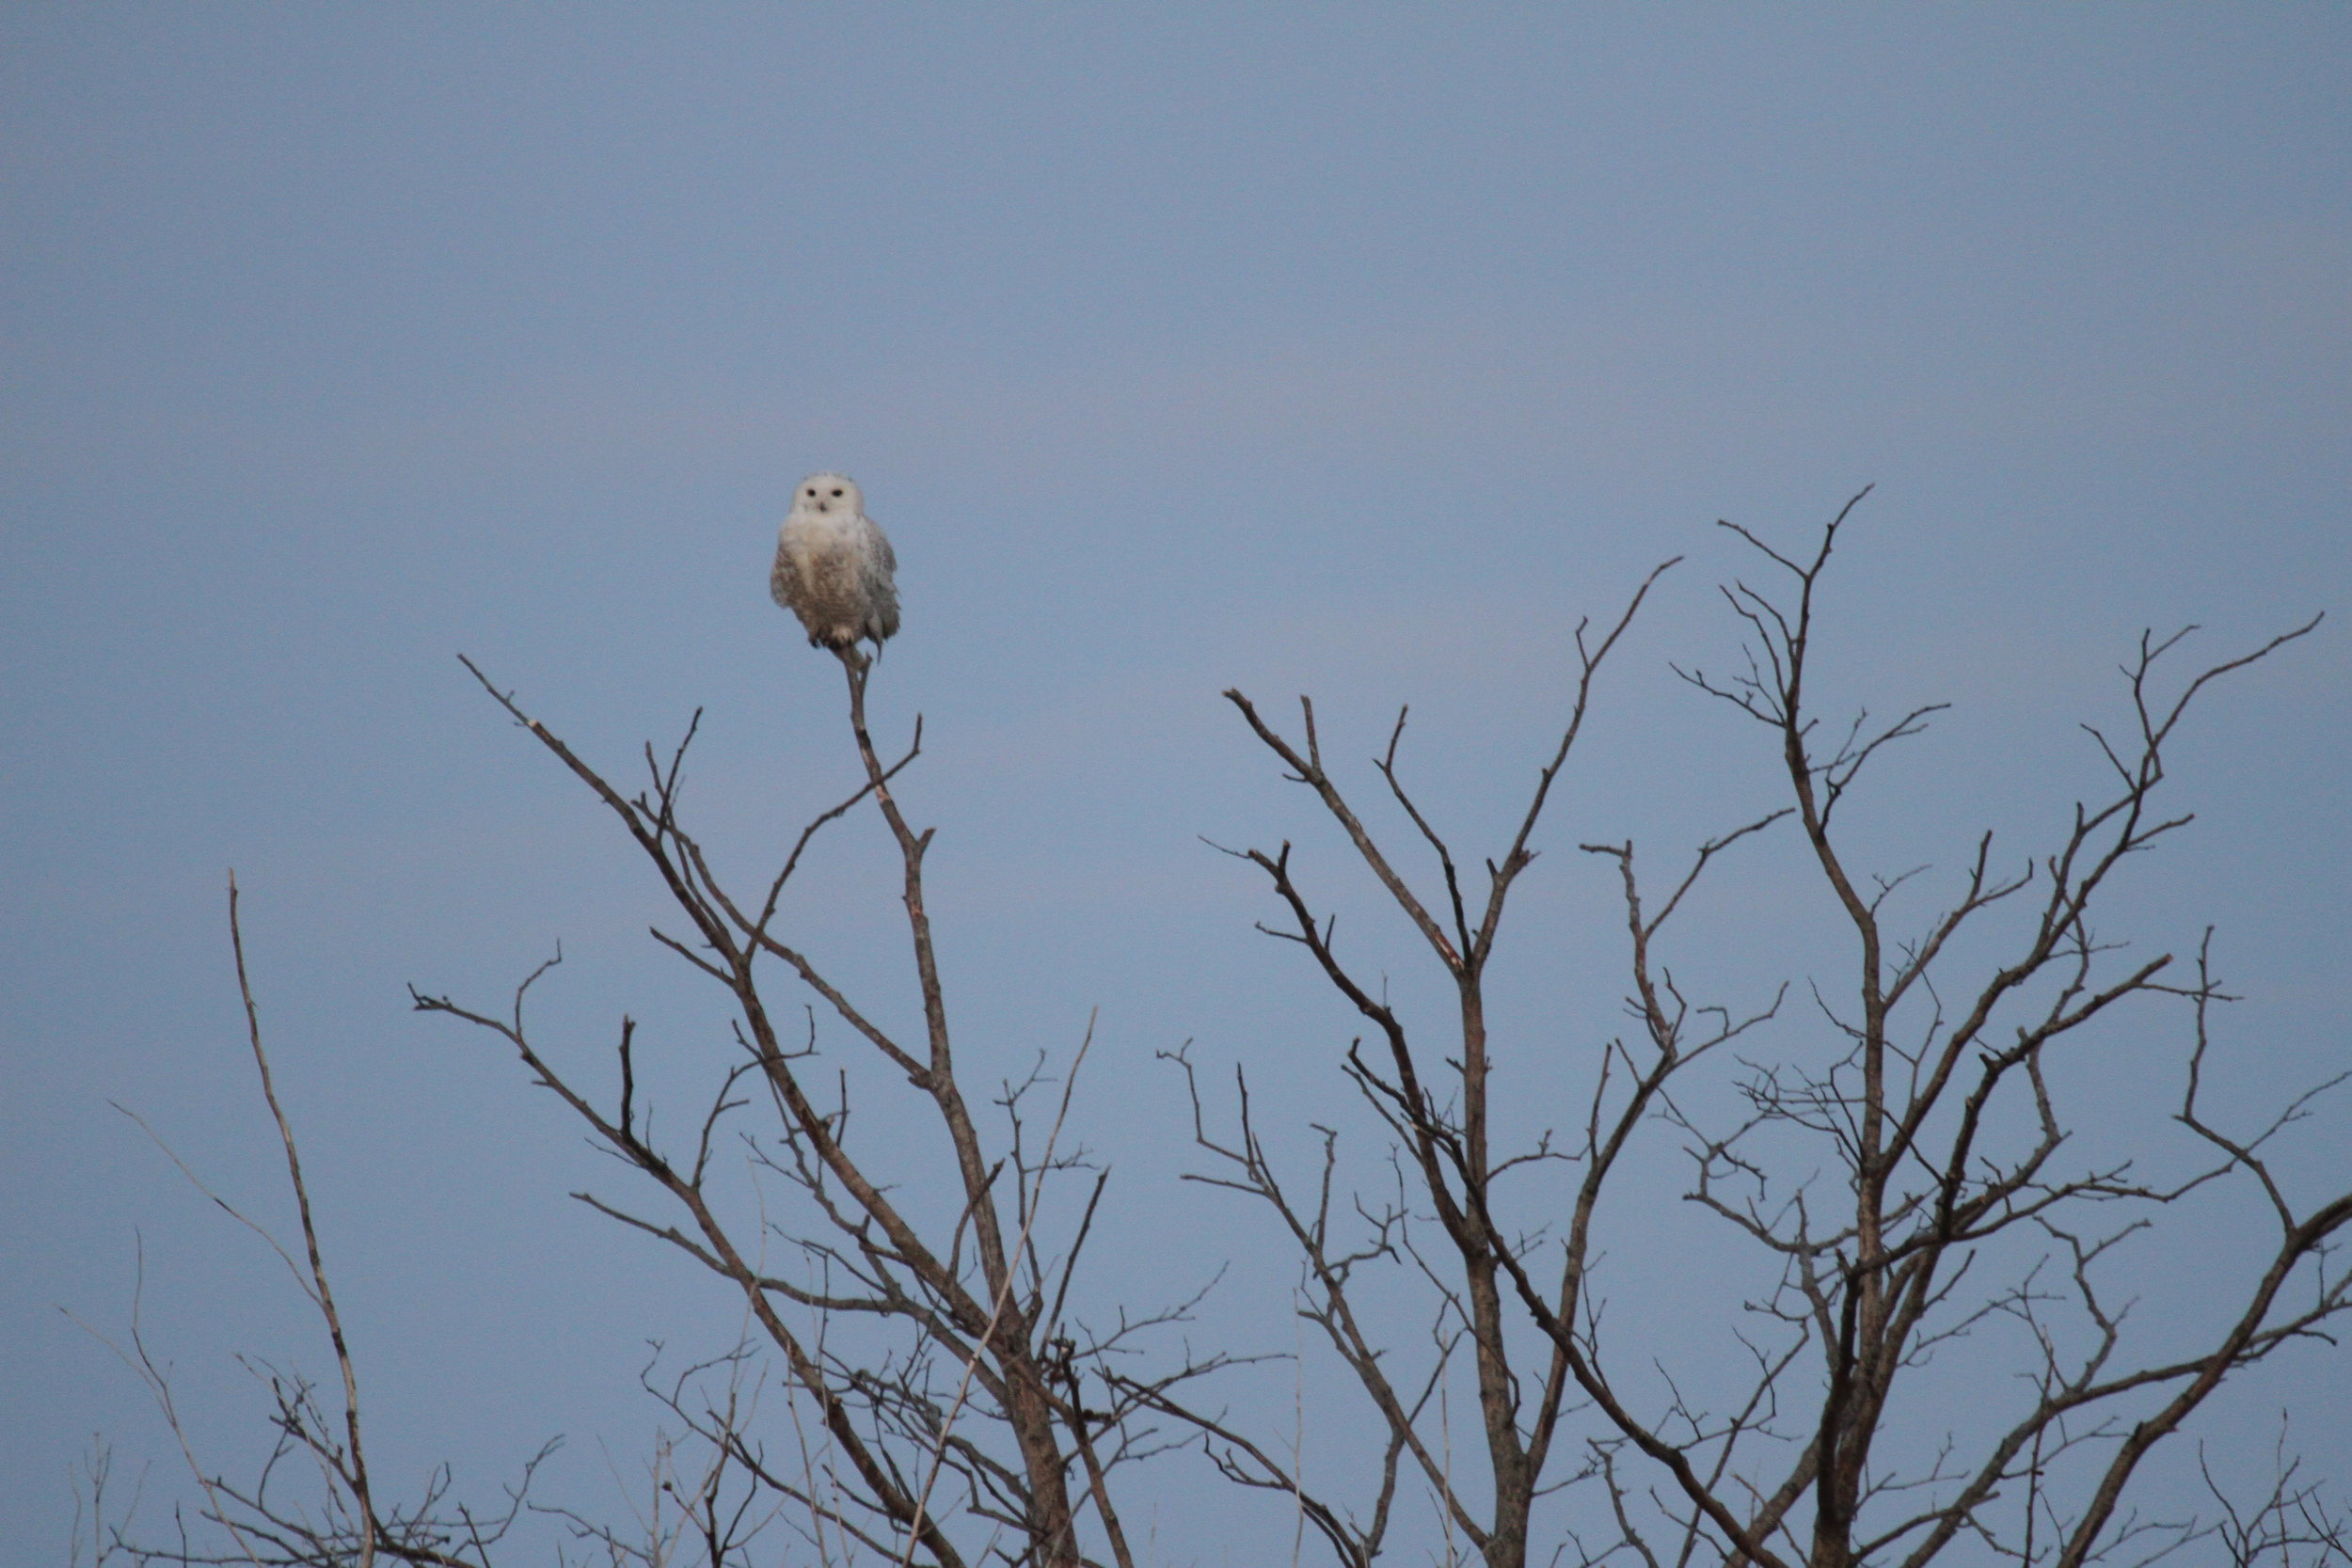 The first Snowy Owl I saw, as it faced East, greeting the morning and the sunrise. Tanya Pluth photo.